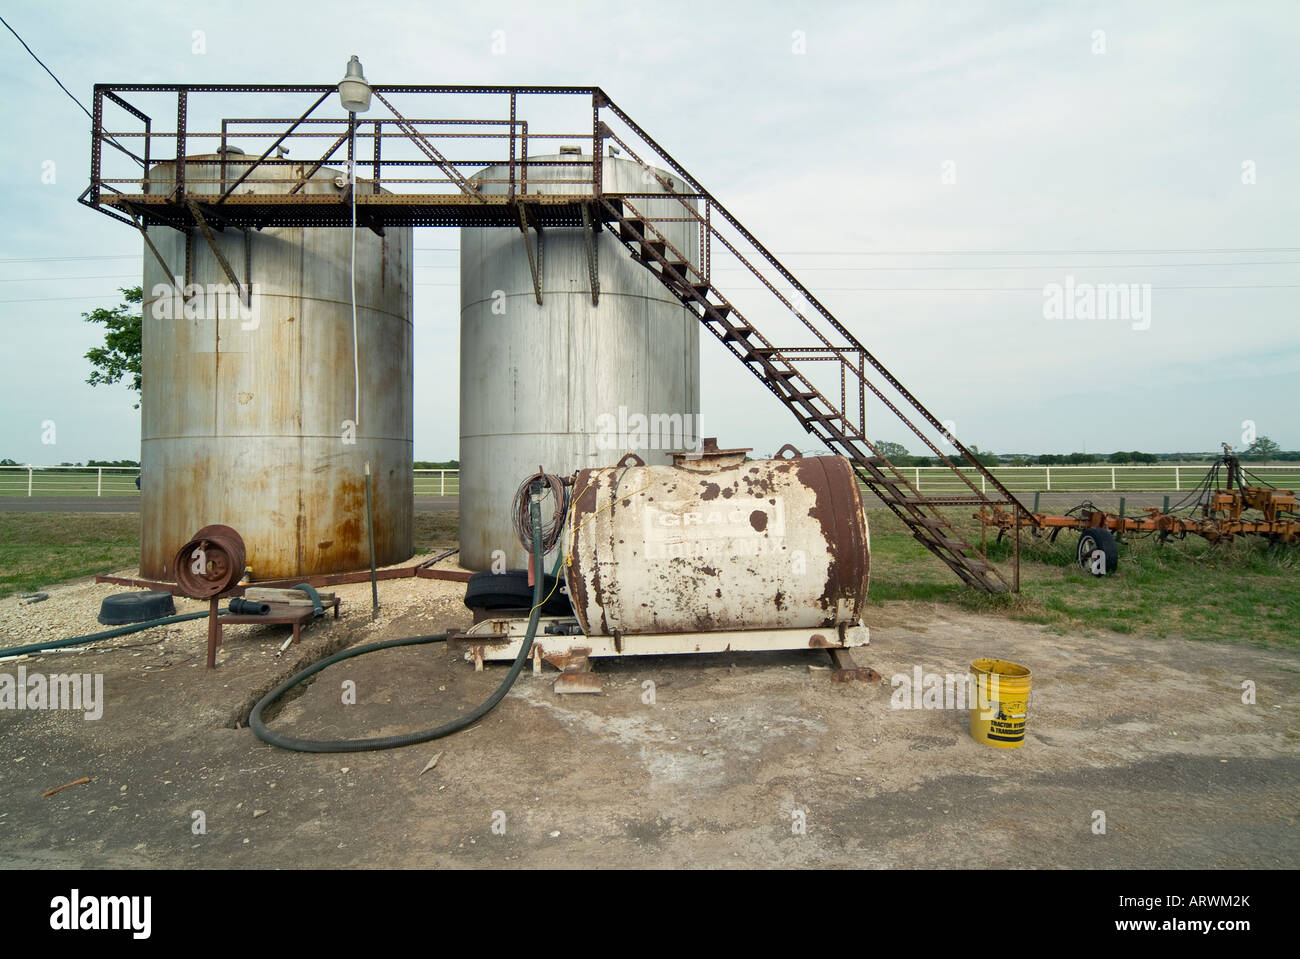 Farm equipment near Celina, a small town in Texas. - Stock Image